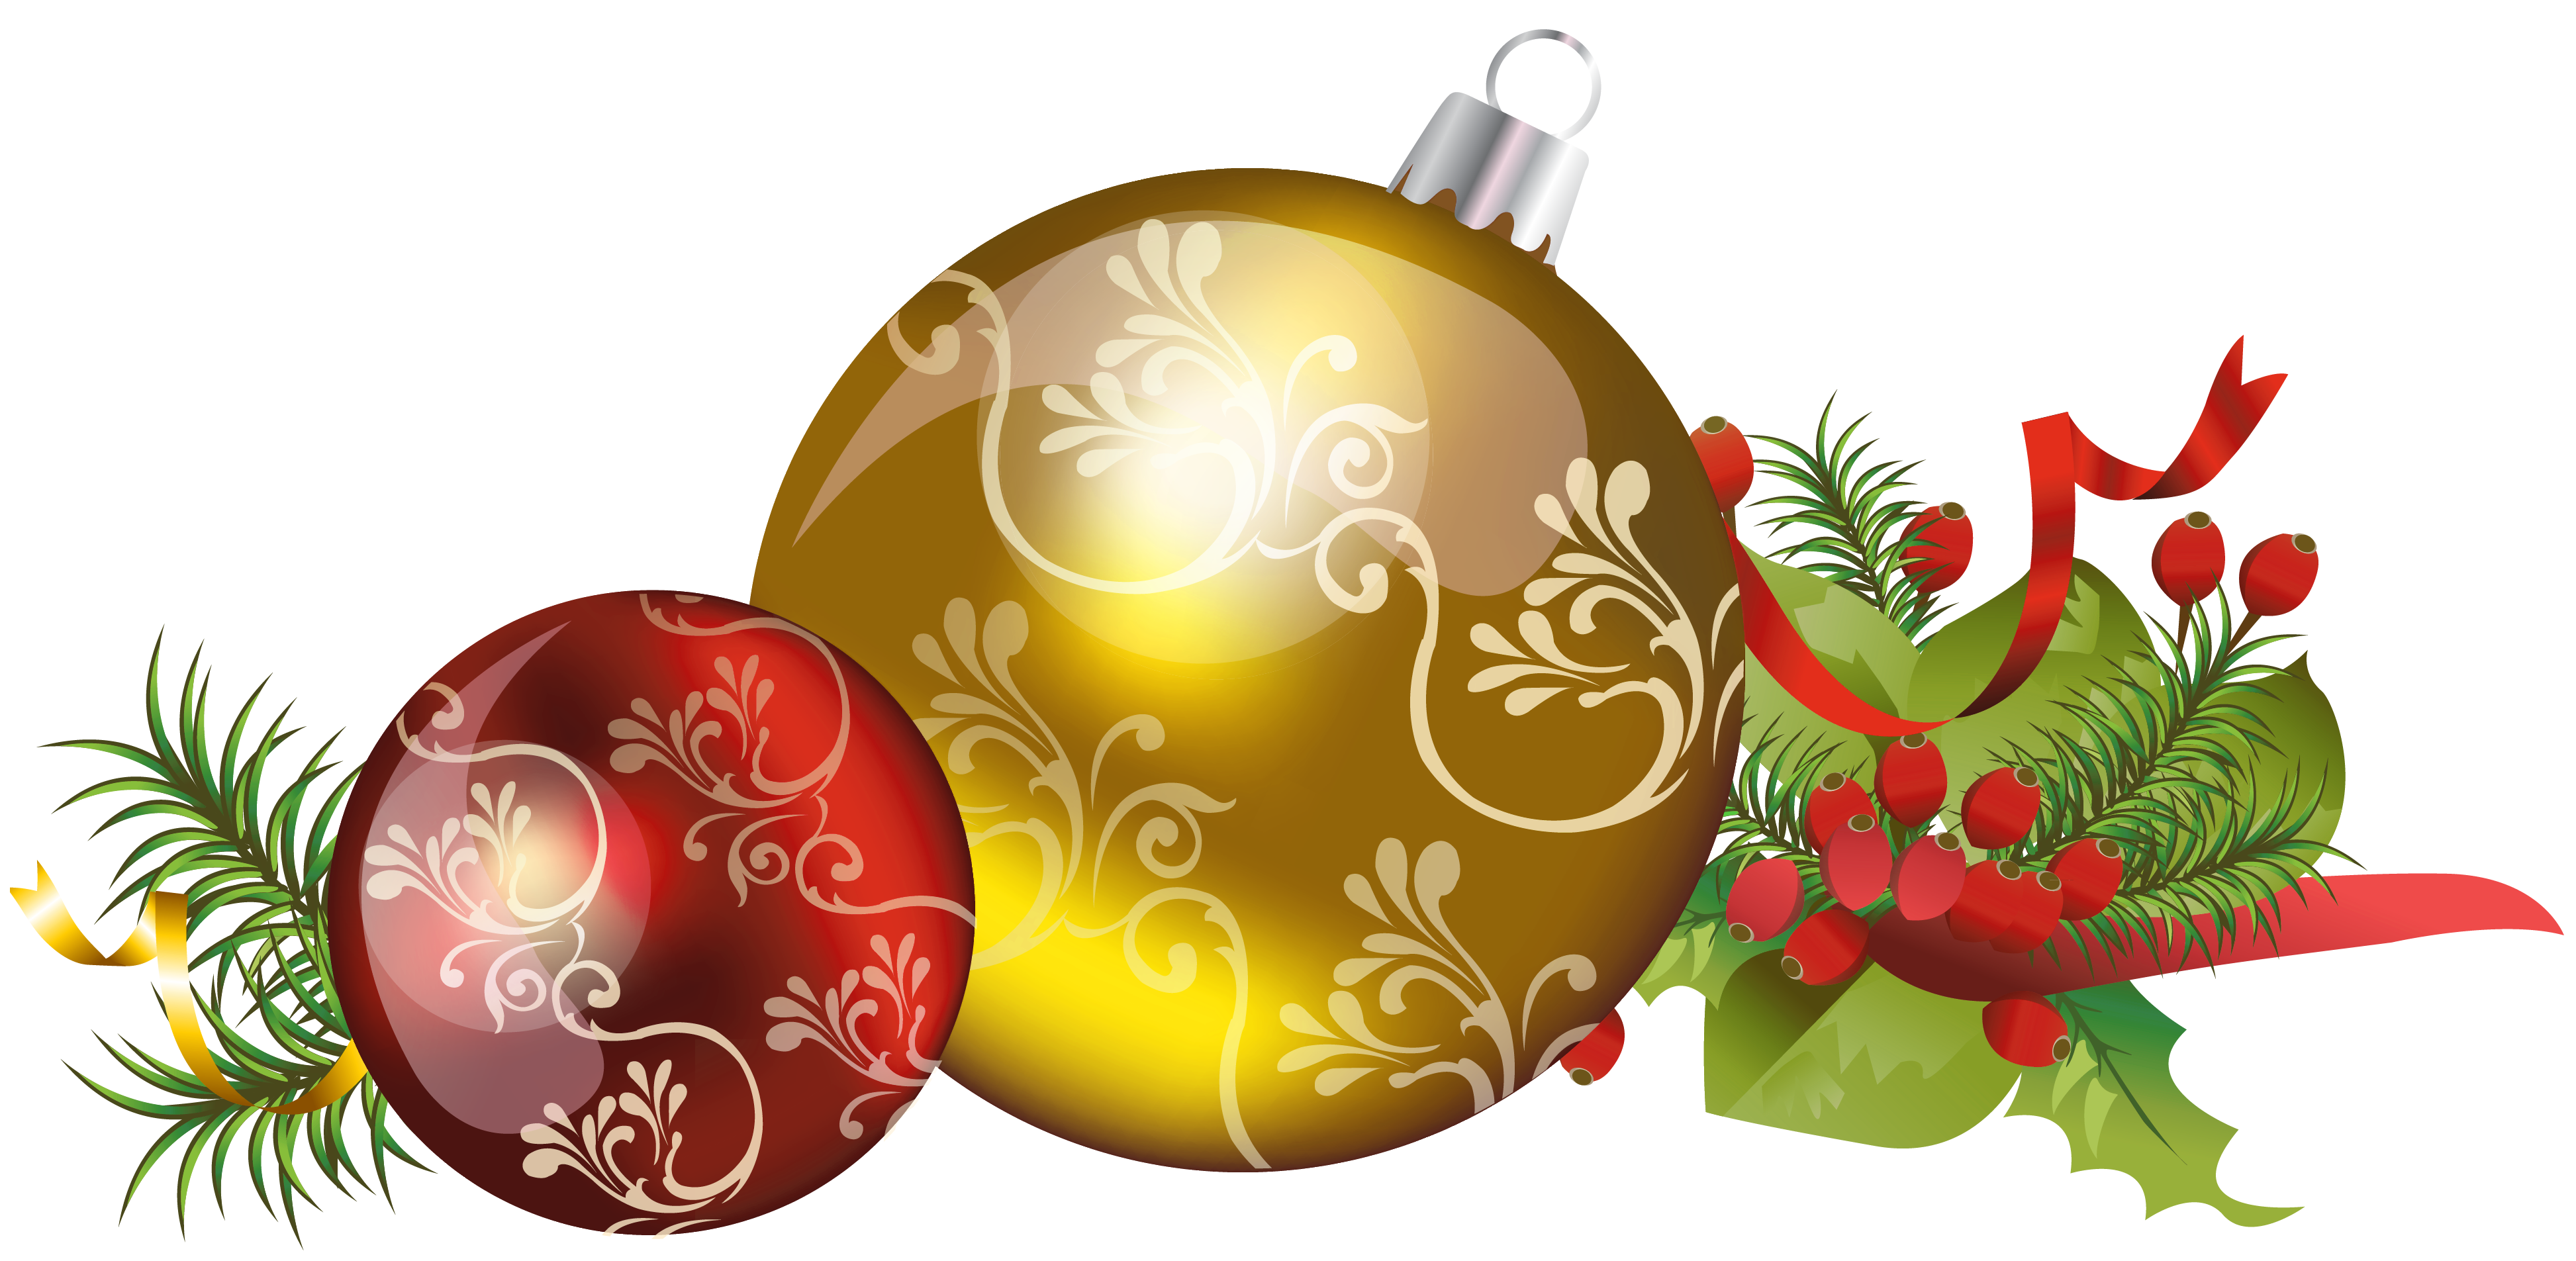 Christmas Tree Ball Decorations Clipart.